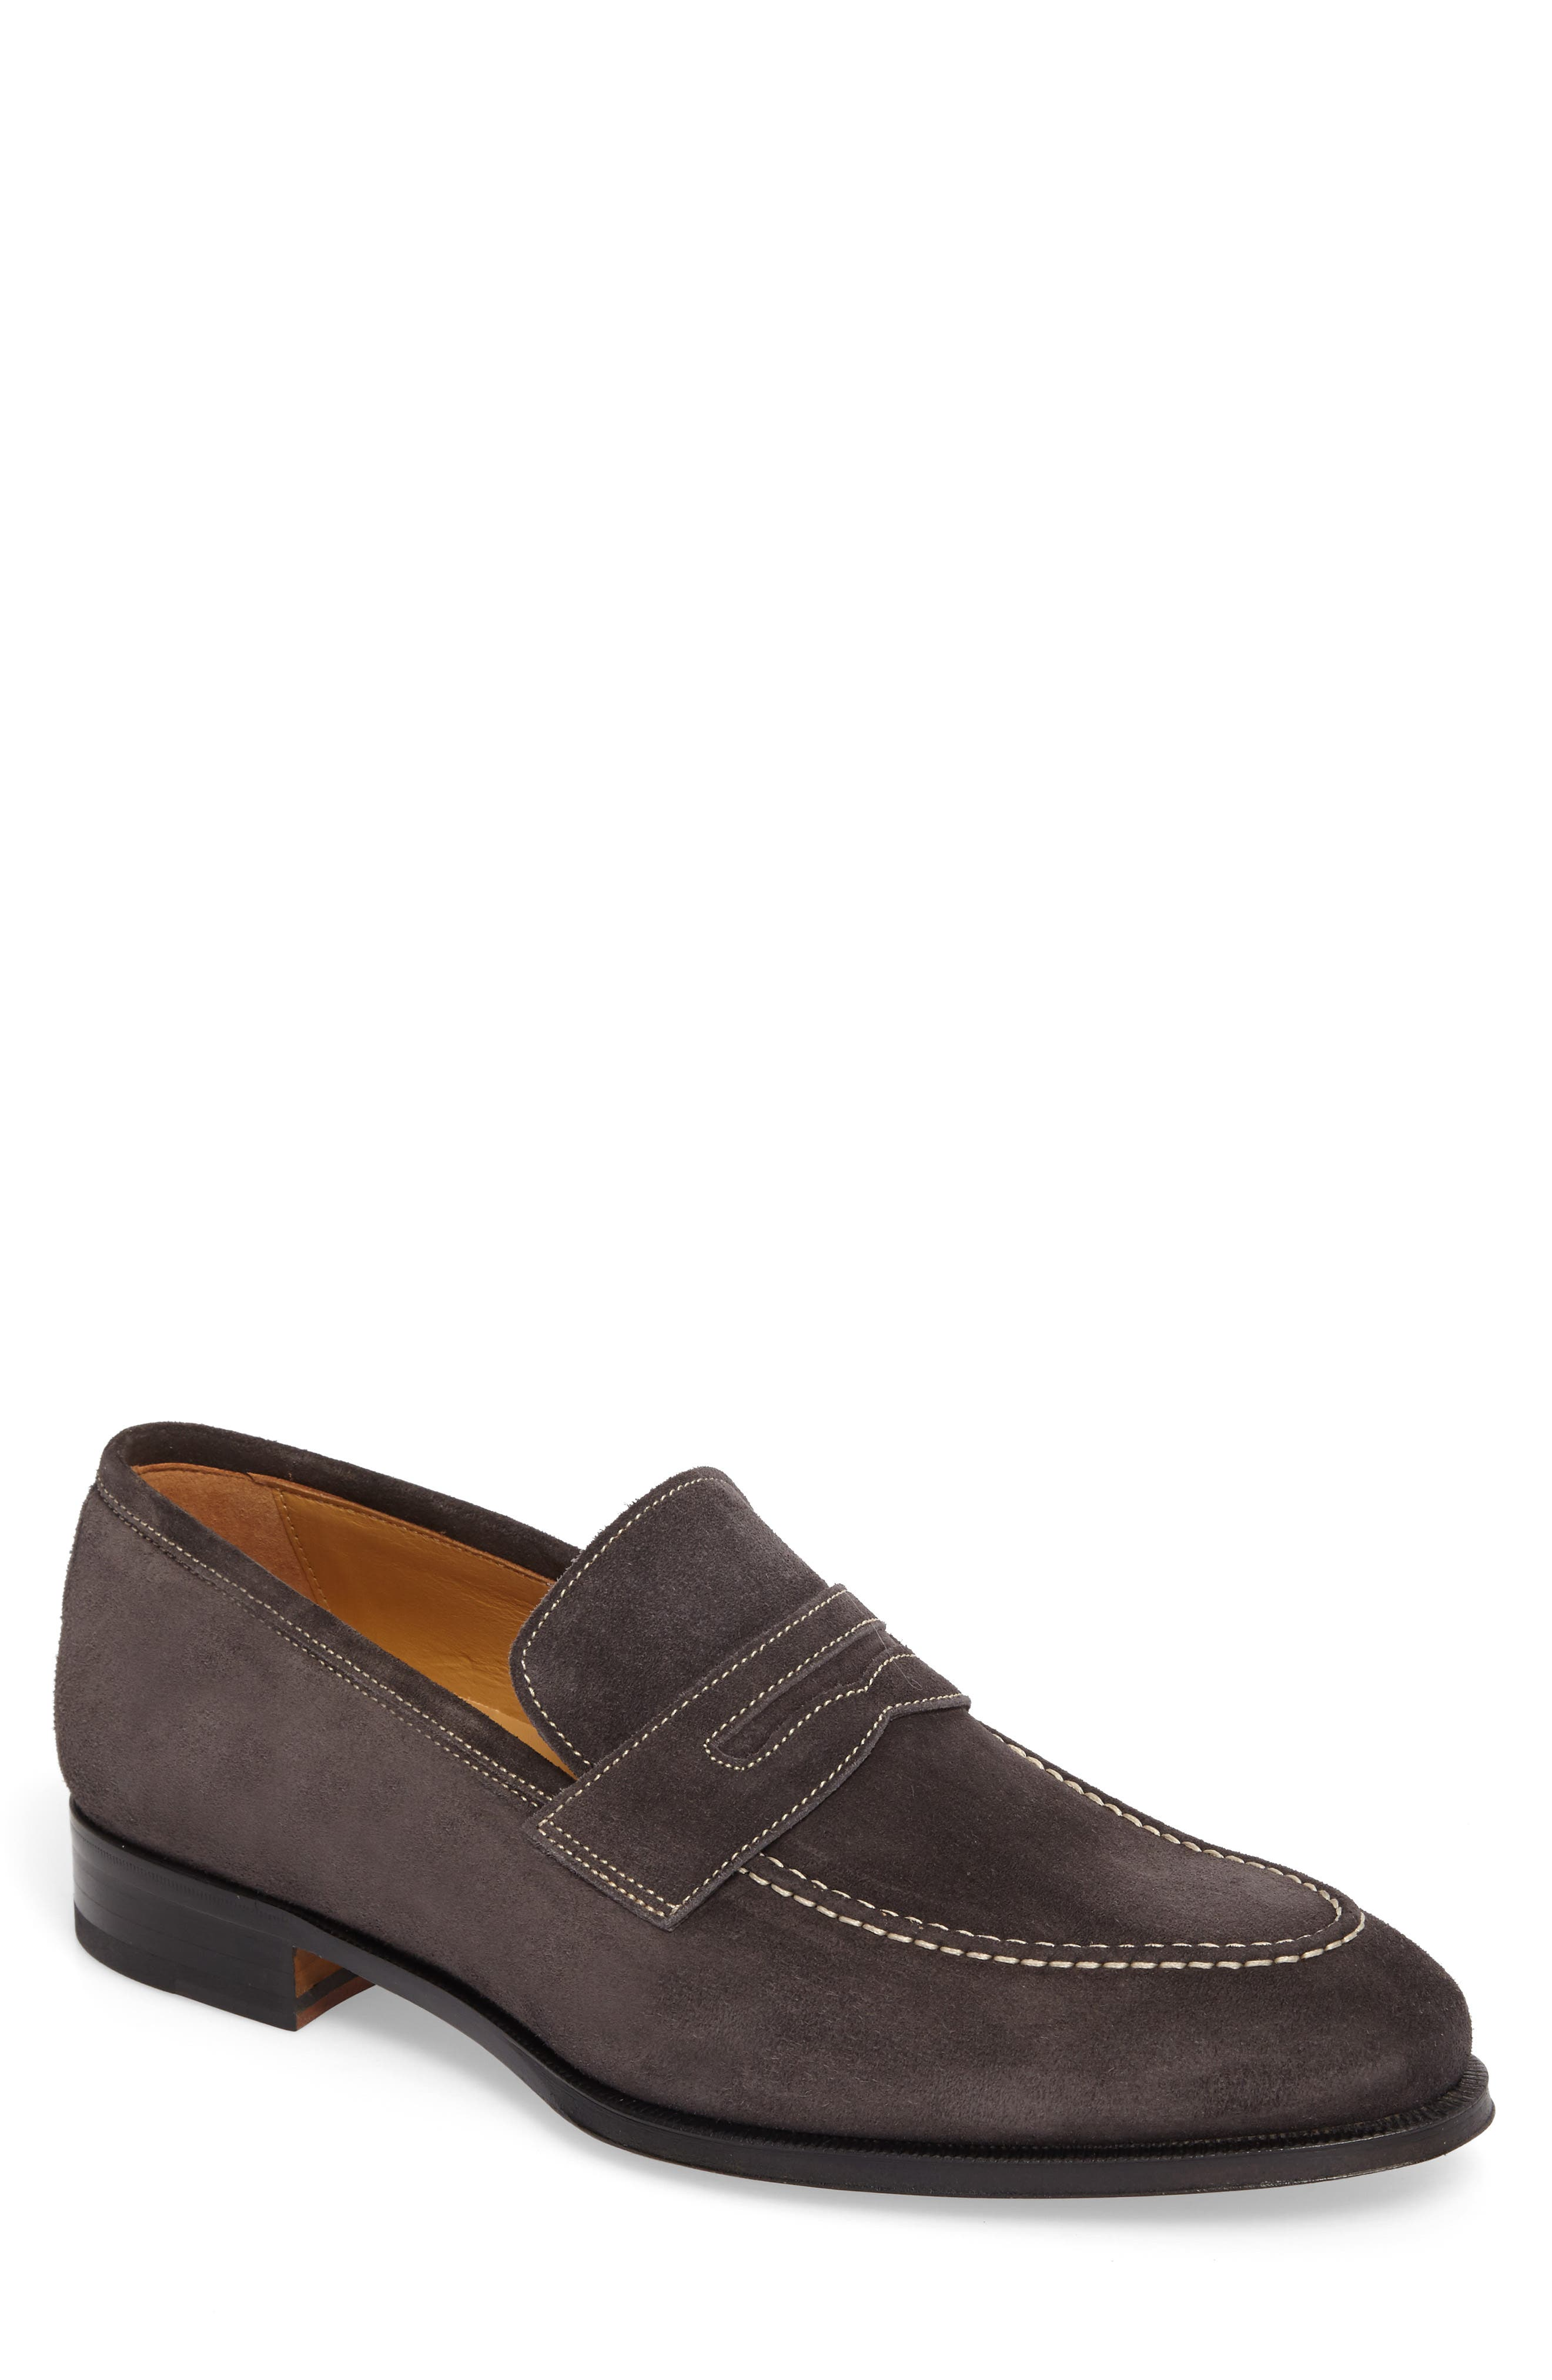 Leather Penny Loafer,                         Main,                         color,